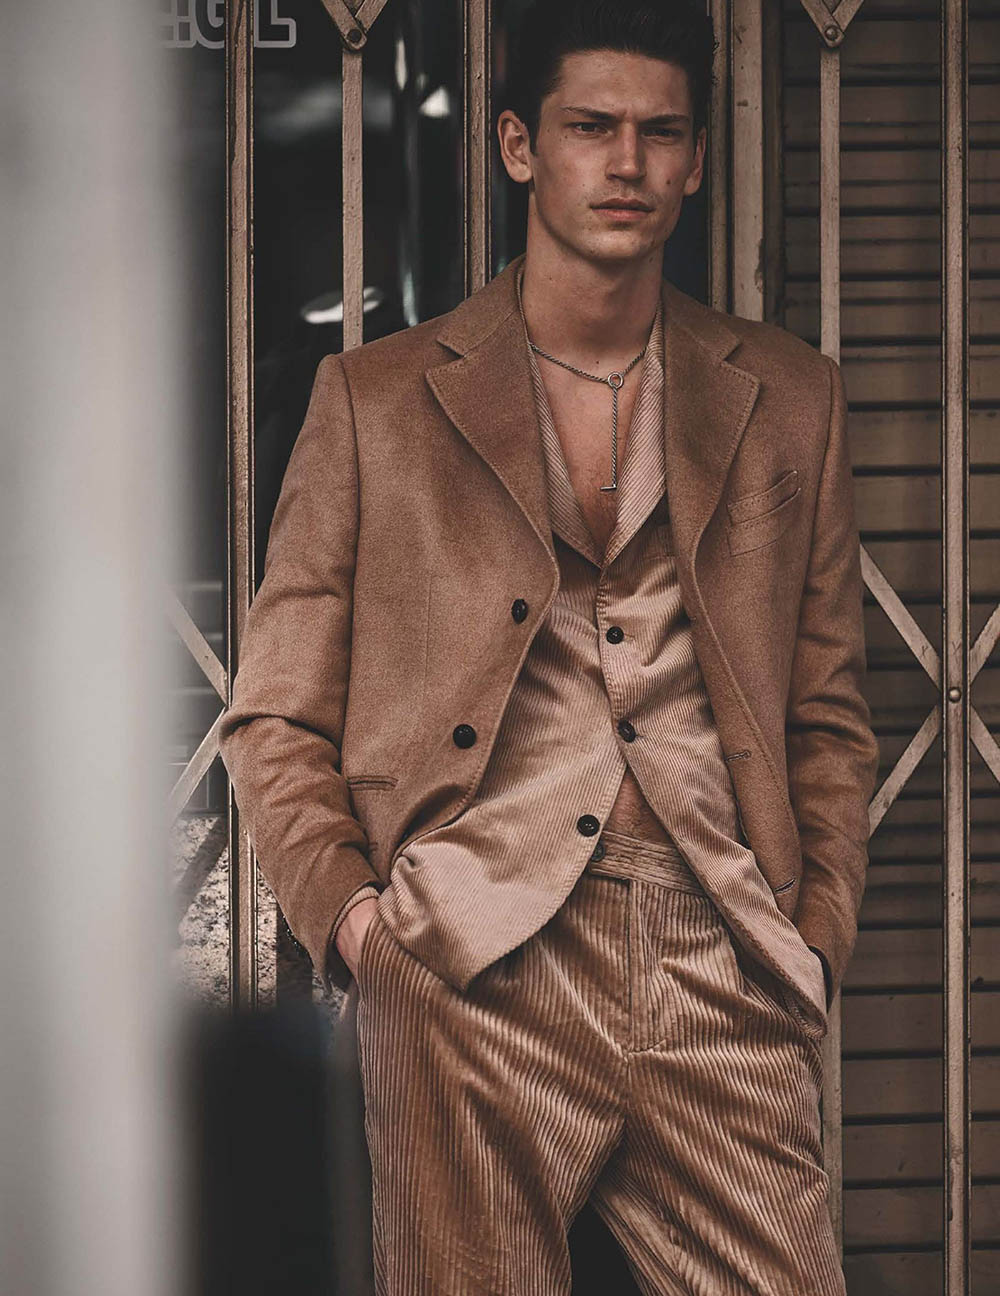 Justin Eric Martin by Blair Getz Mezibov for British GQ November 2019